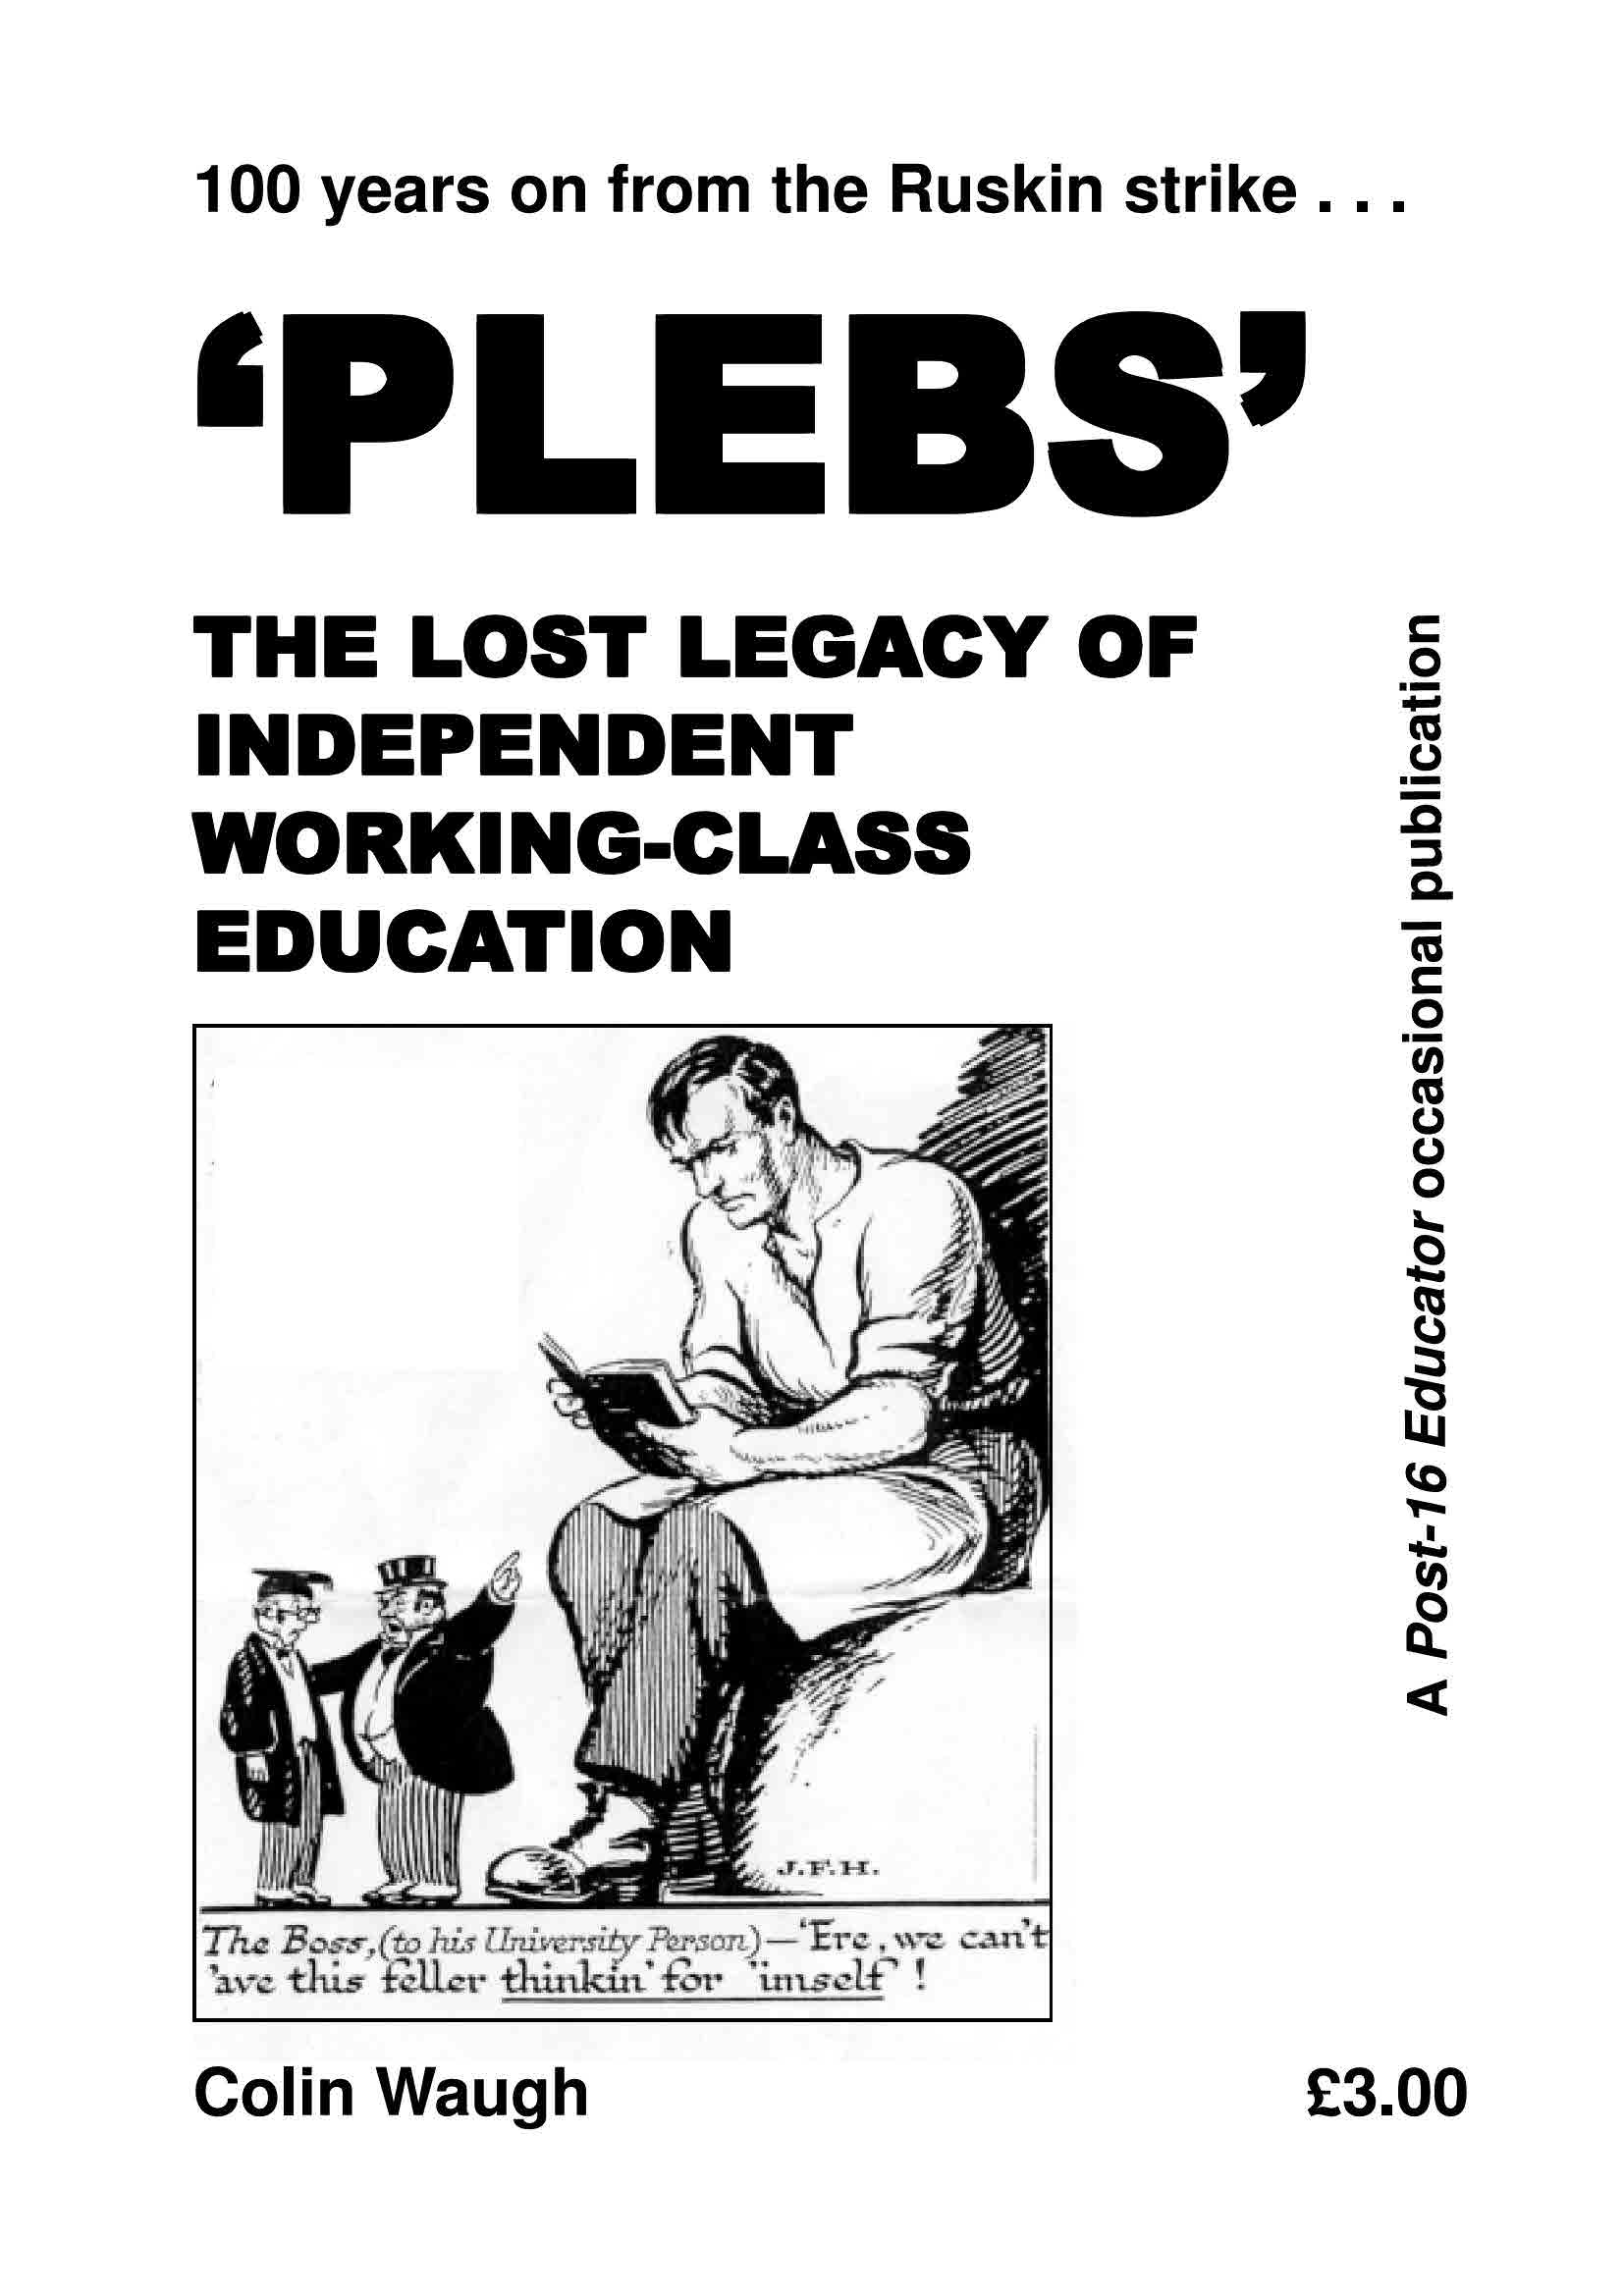 Plebs pamphlet current version 2